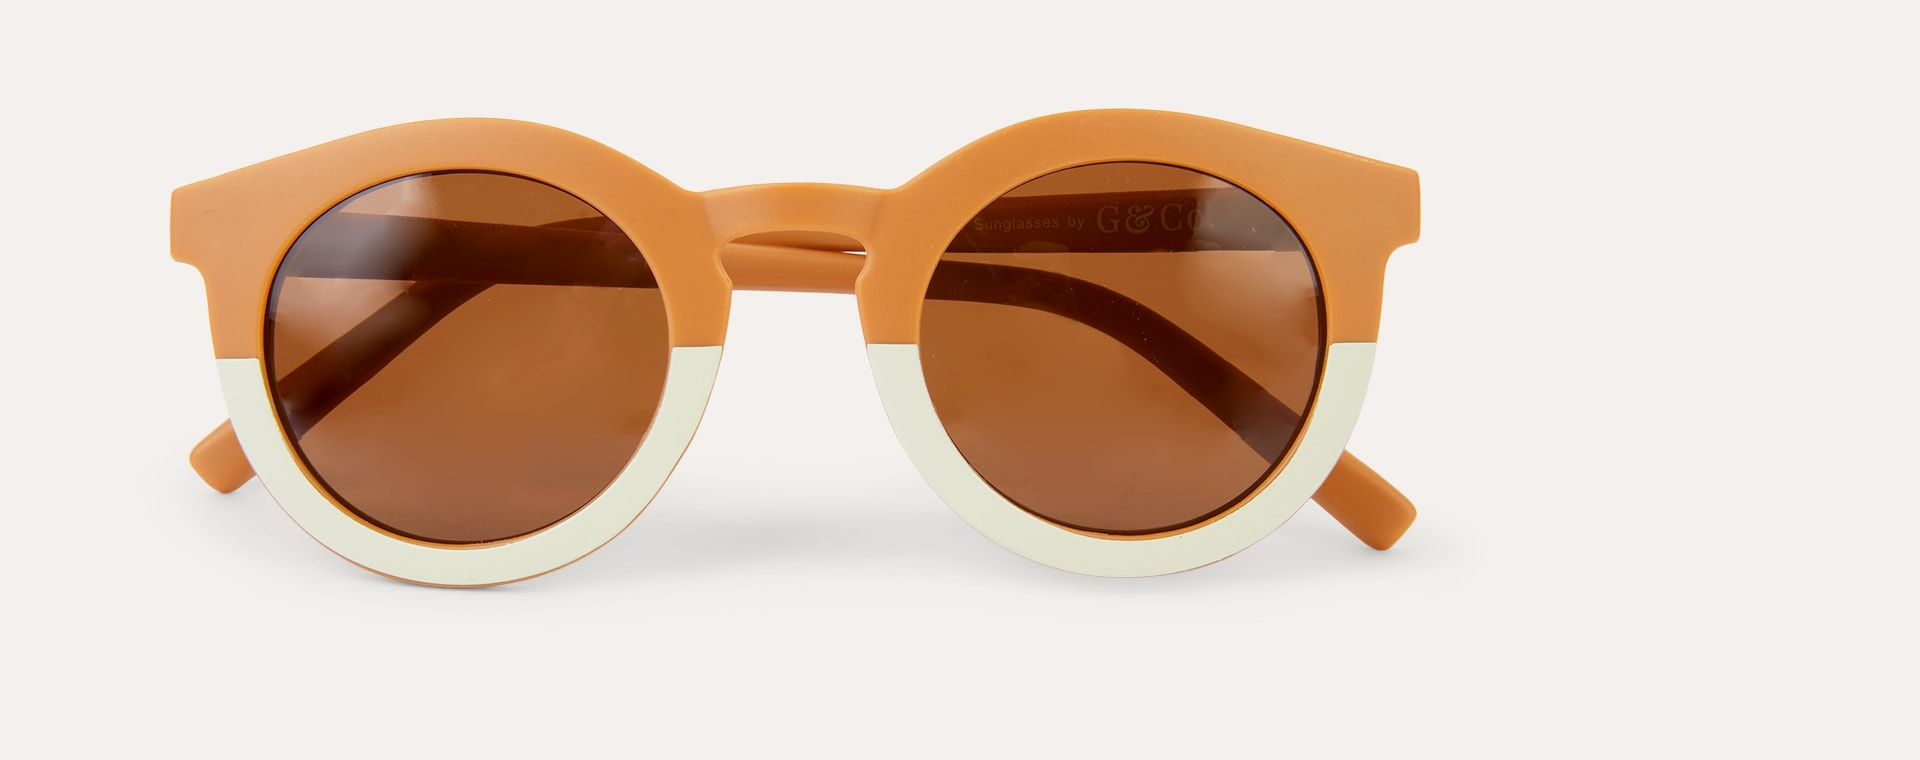 Spice+Buff Grech & Co New Sustainable Sunglasses